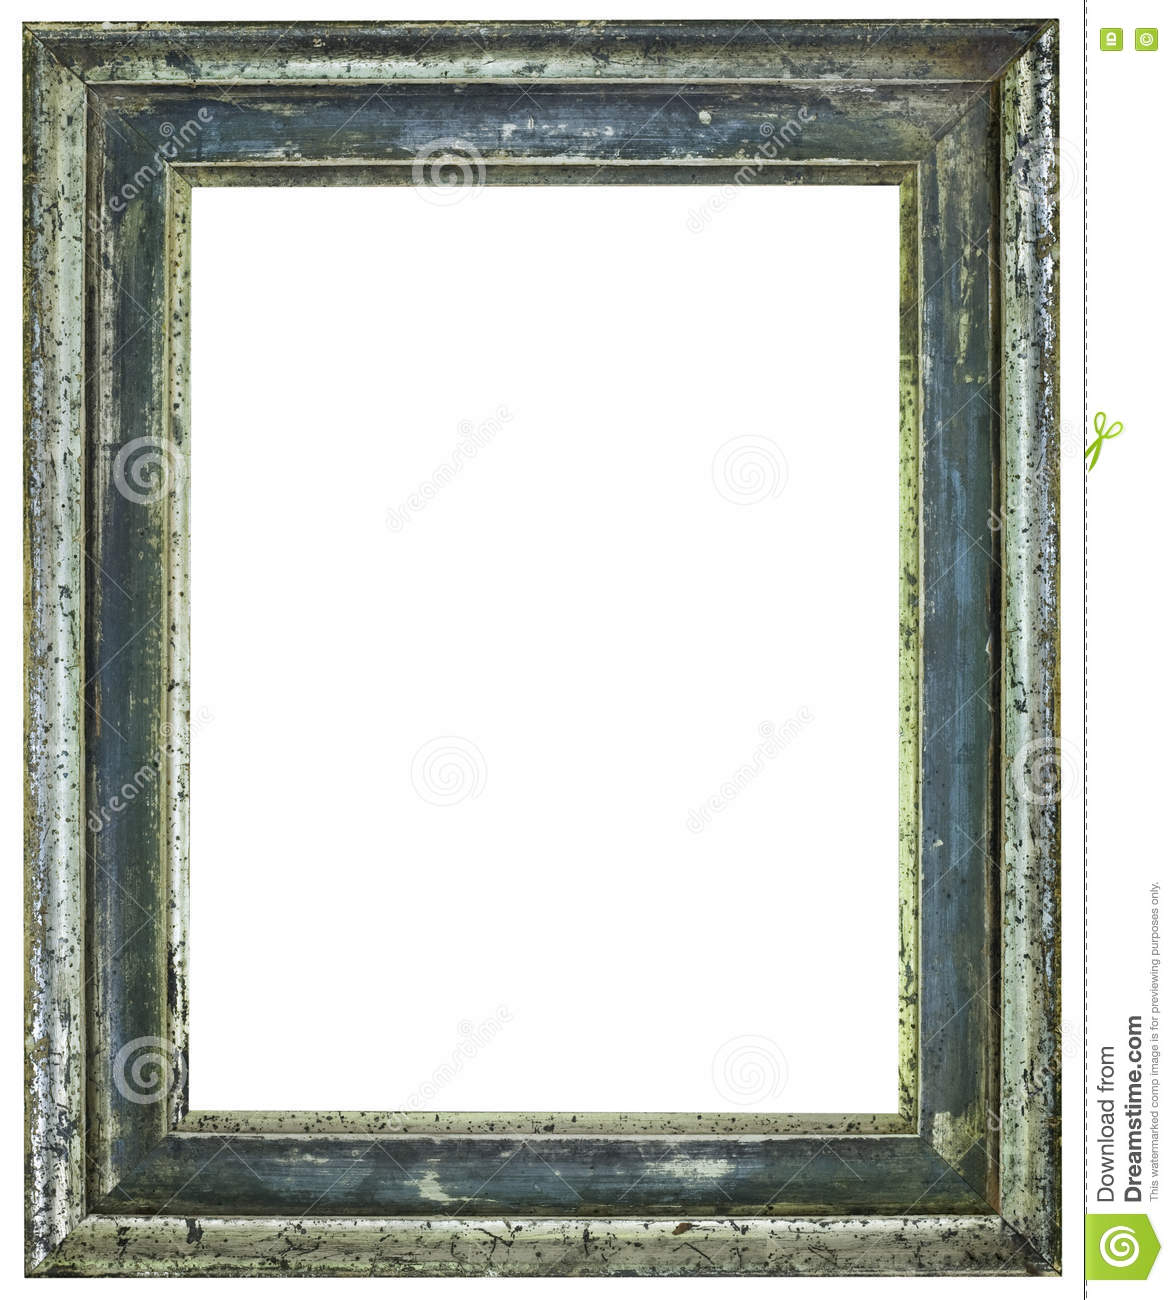 Rusty Picture Frame Cutout stock photo. Image of decorative - 75508340